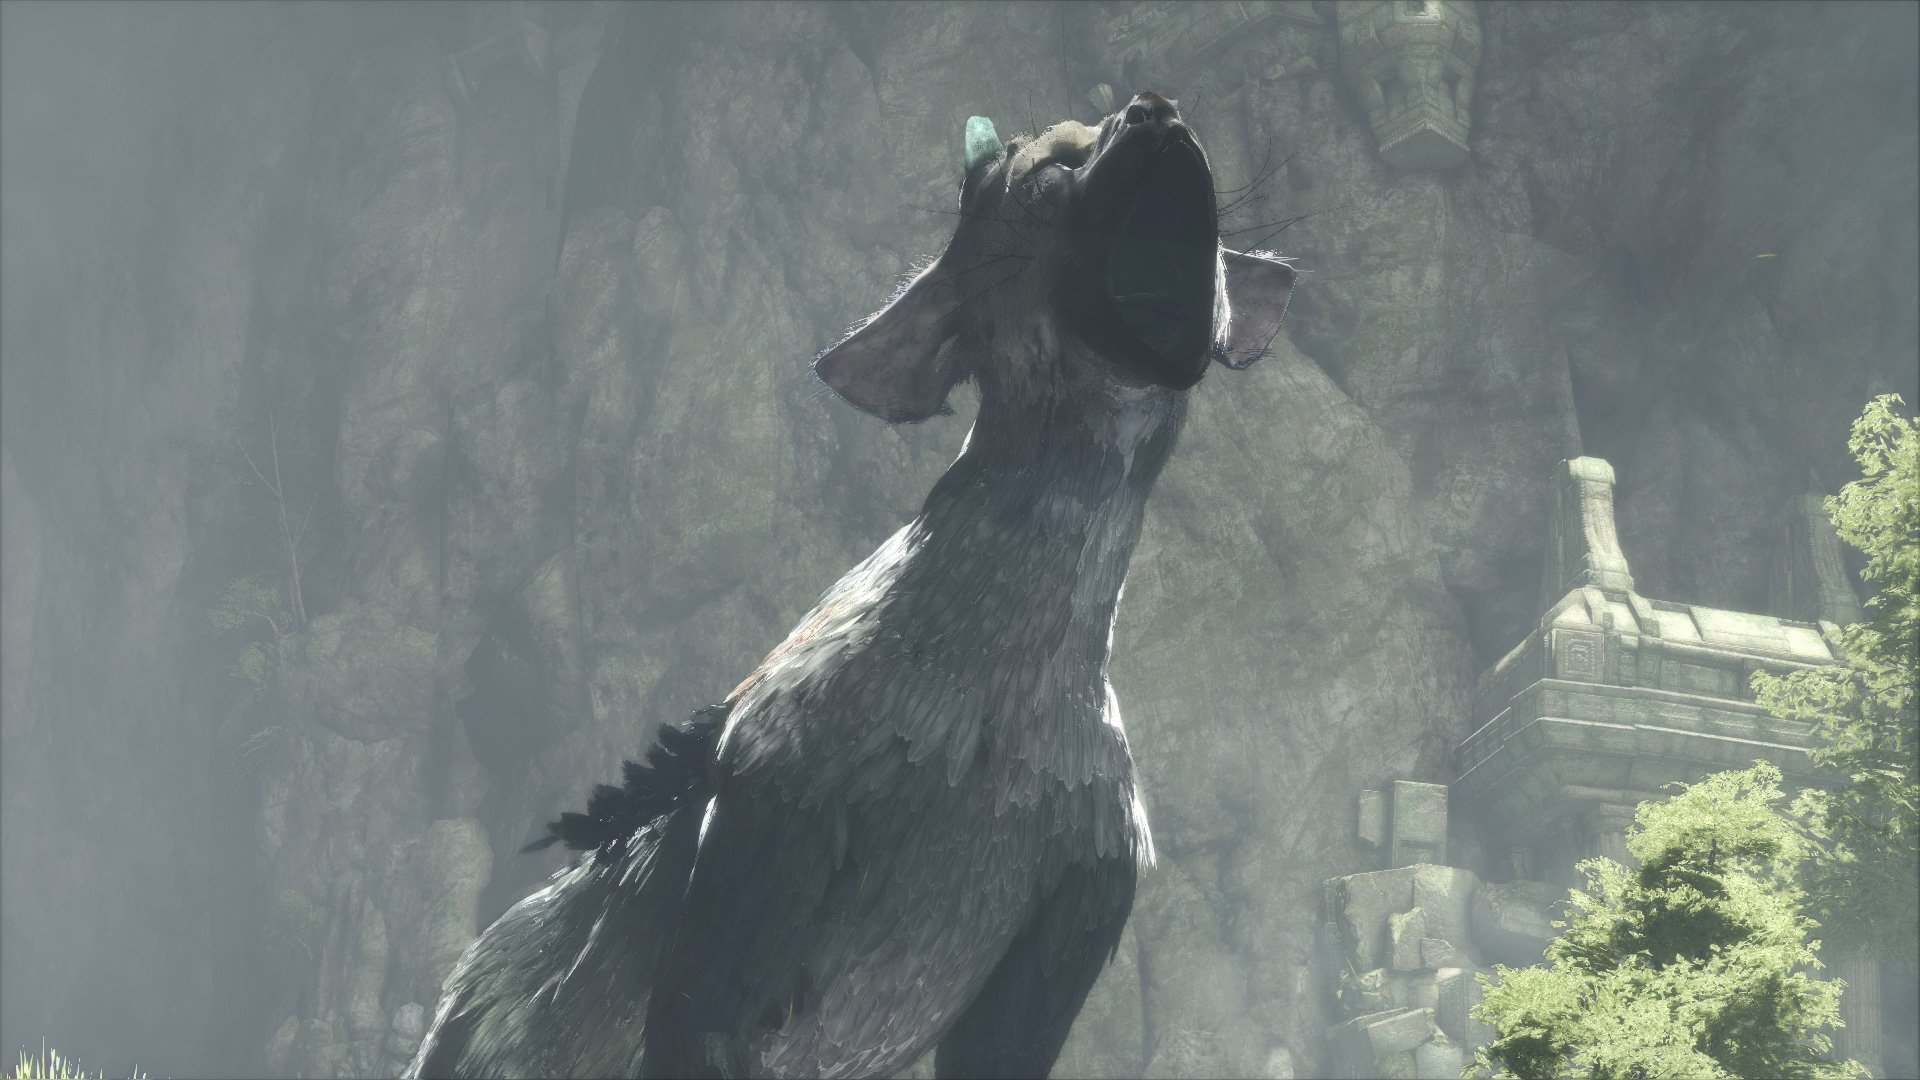 If you want to play The Last Guardian at a reasonably stable framerate, you'll need a PS4 Pro screenshot